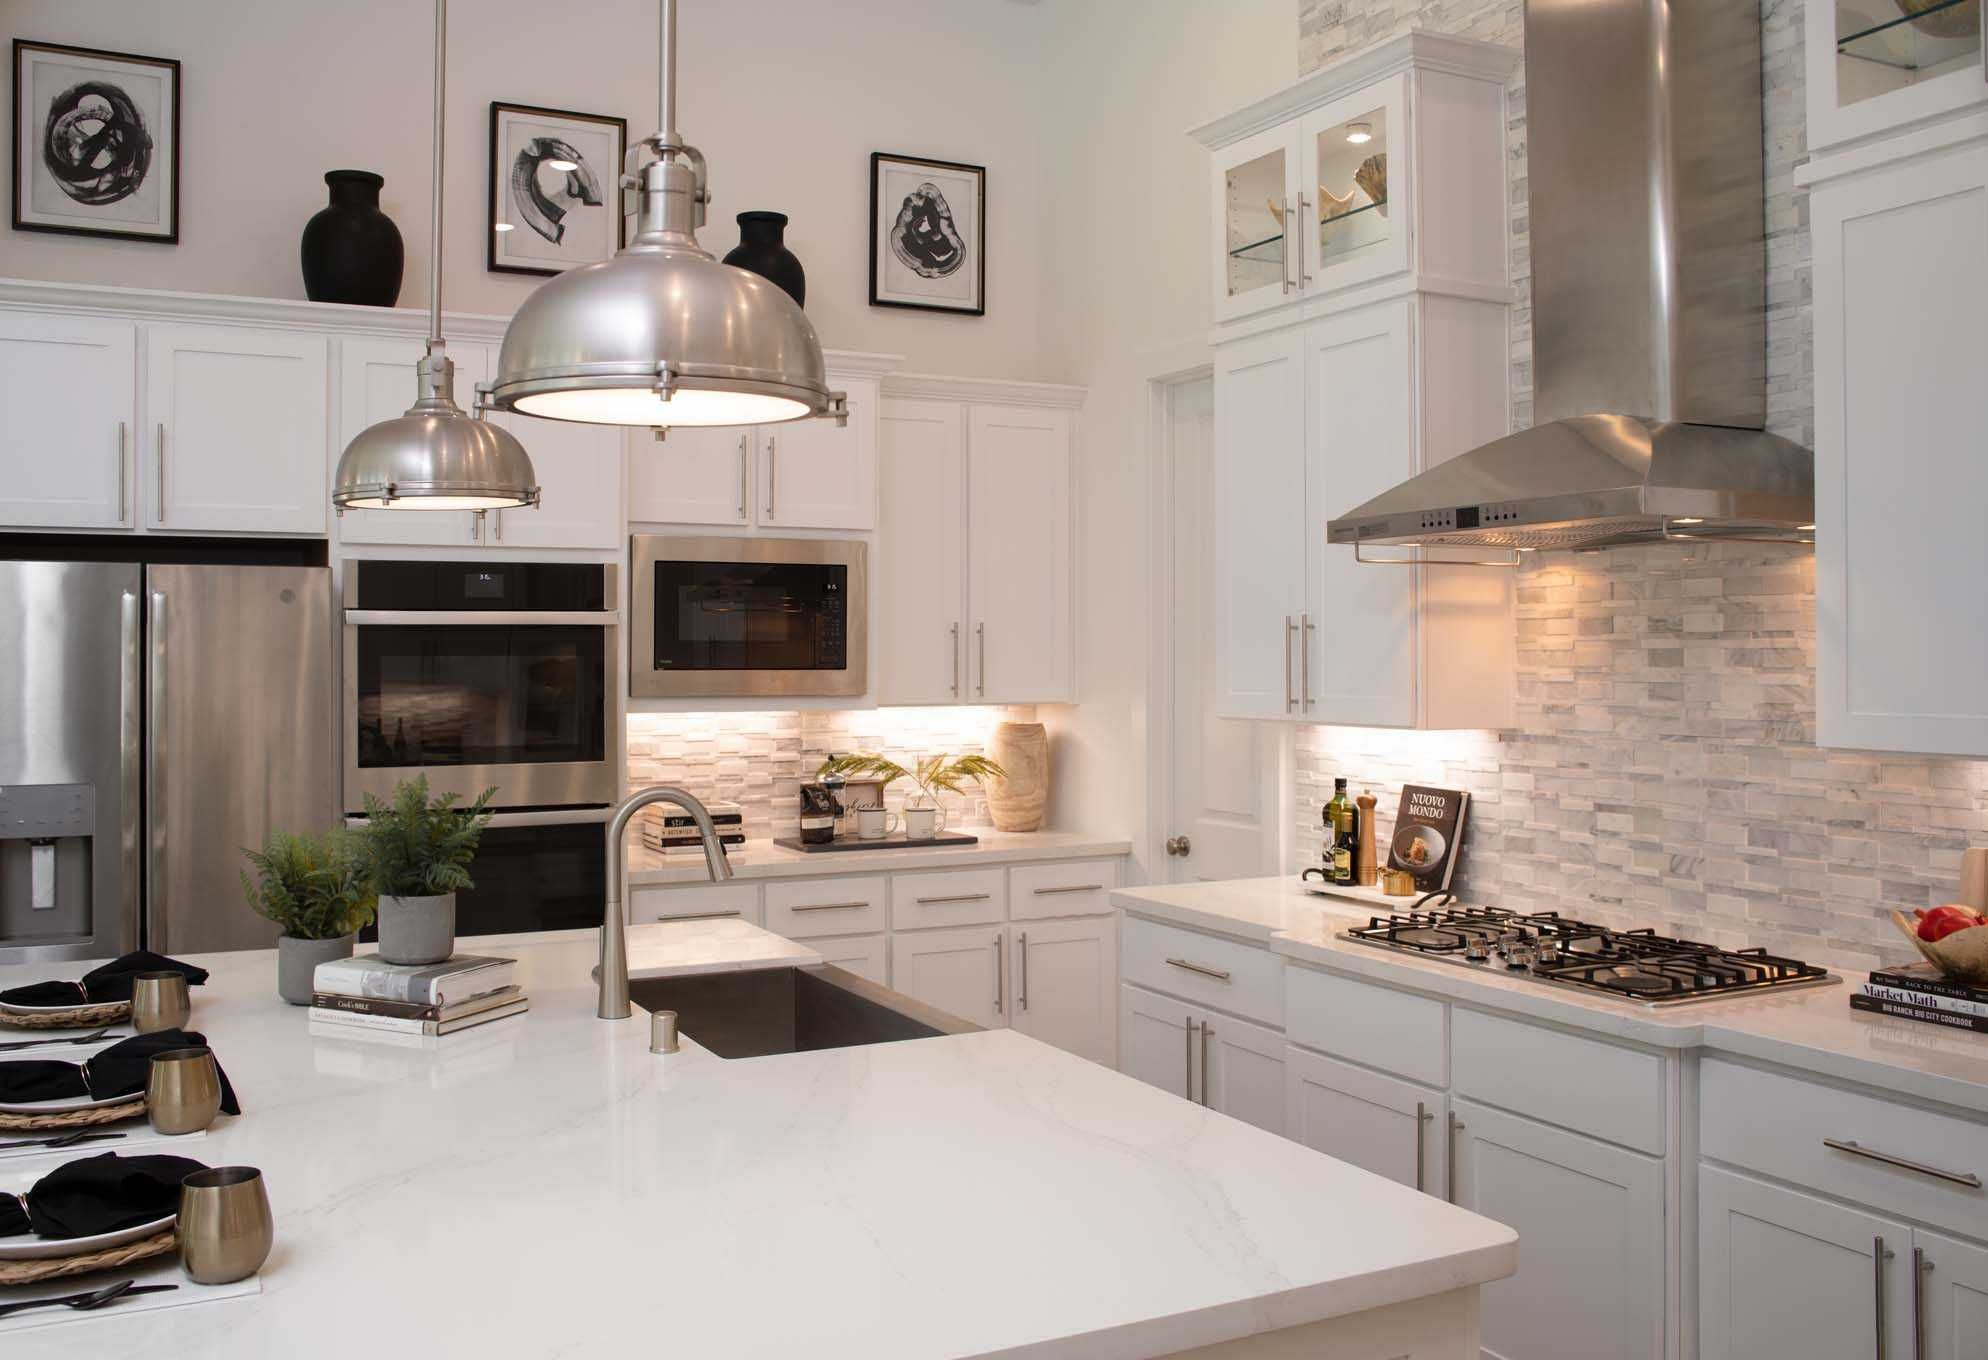 Highland Homes 272 Plan Conroe Tx The Woodlands Hills Community Kitchen New Home Builders Highland Homes New House Plans